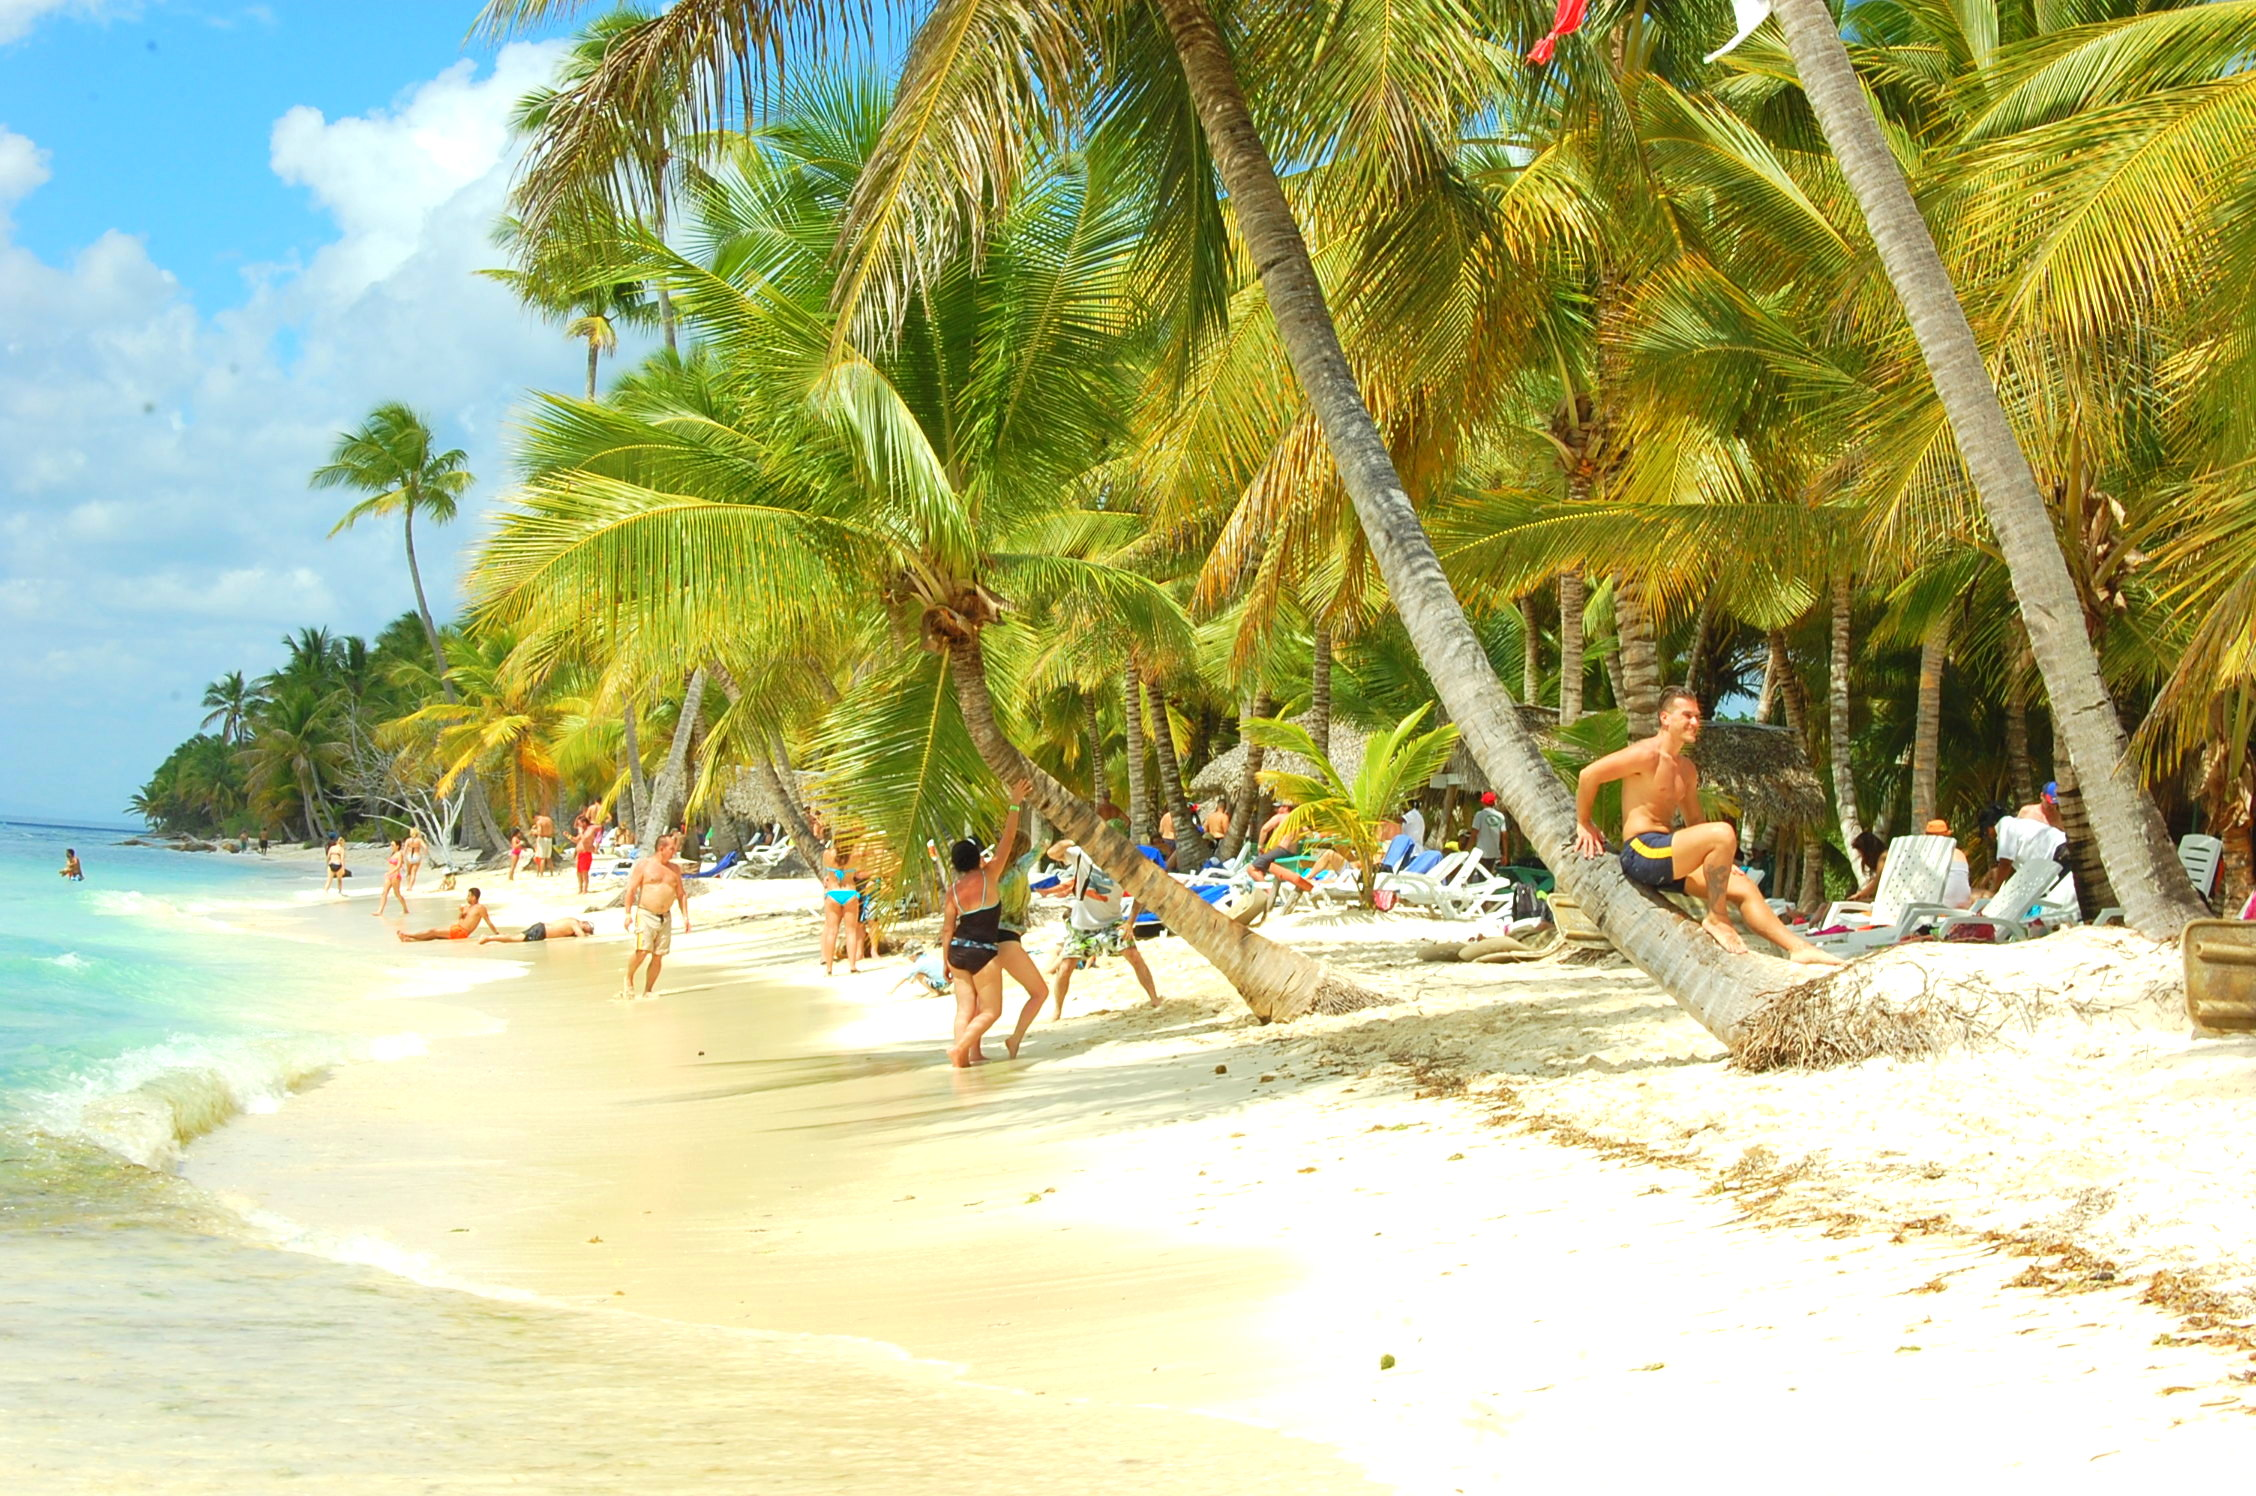 Discover what our top 5 excursions are in the Dominican Republic.